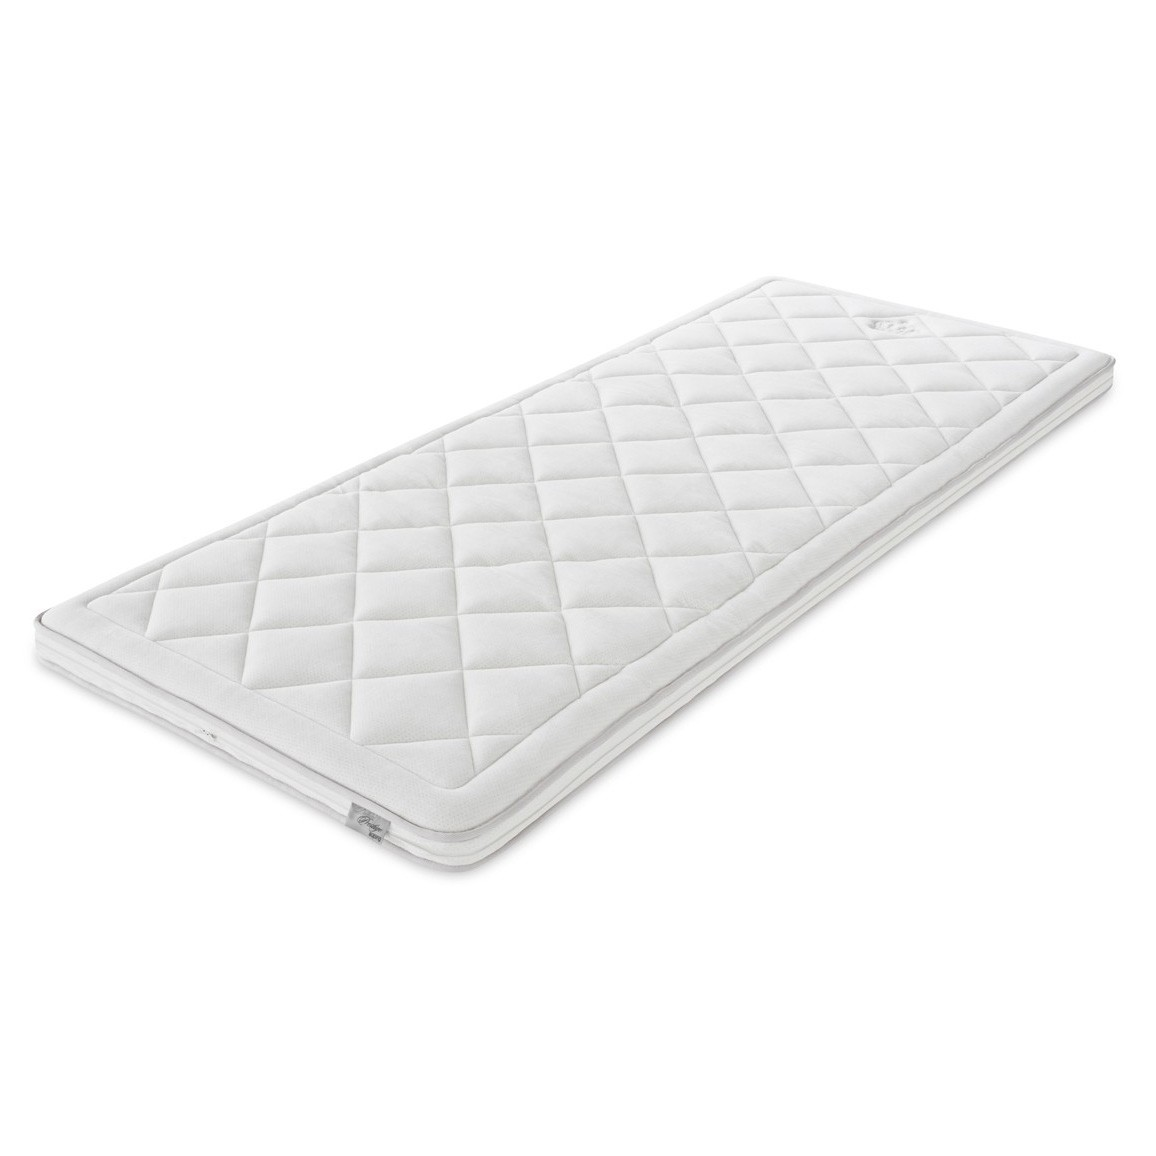 Boxspring Topper Deluxe